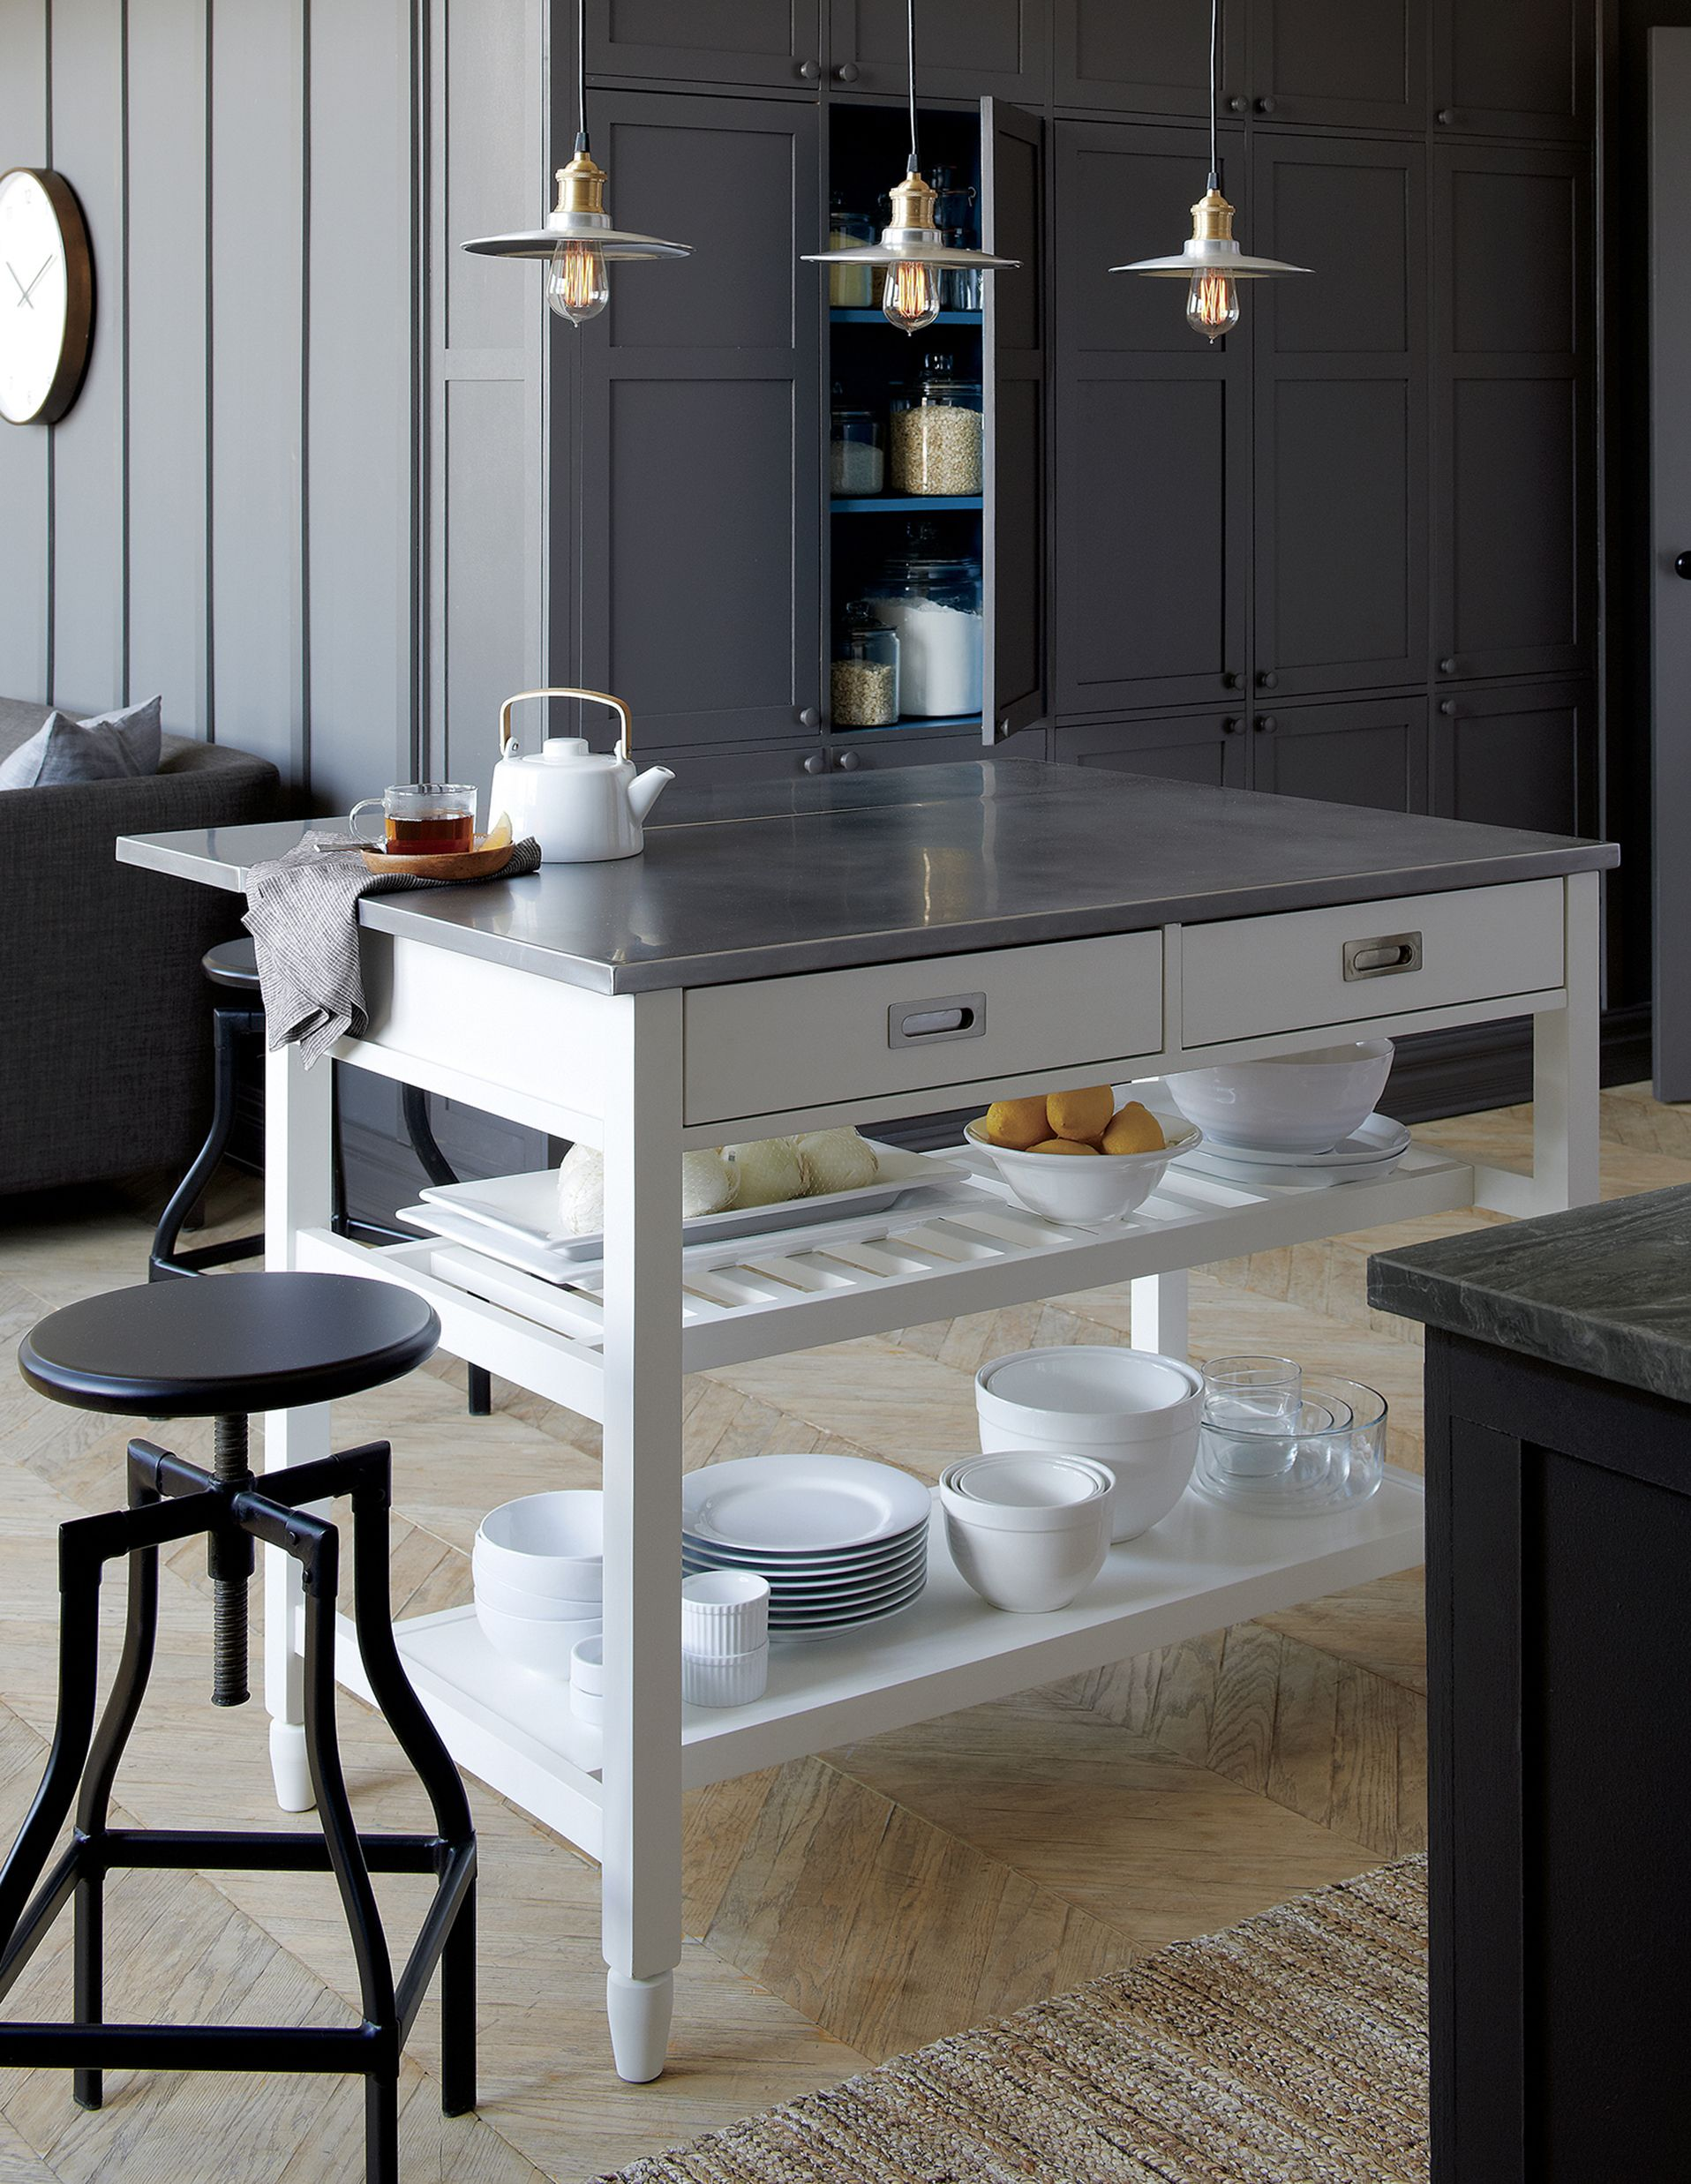 Instantly expand your kitchen's work surface and storage with form, function and versatility. Designed by Bill Eastburn, the Sheridan kitchen island's stainless-steel top is a dream—durable and easy to clean—and rests on a solid base atop casters, making it easy to move when needed.